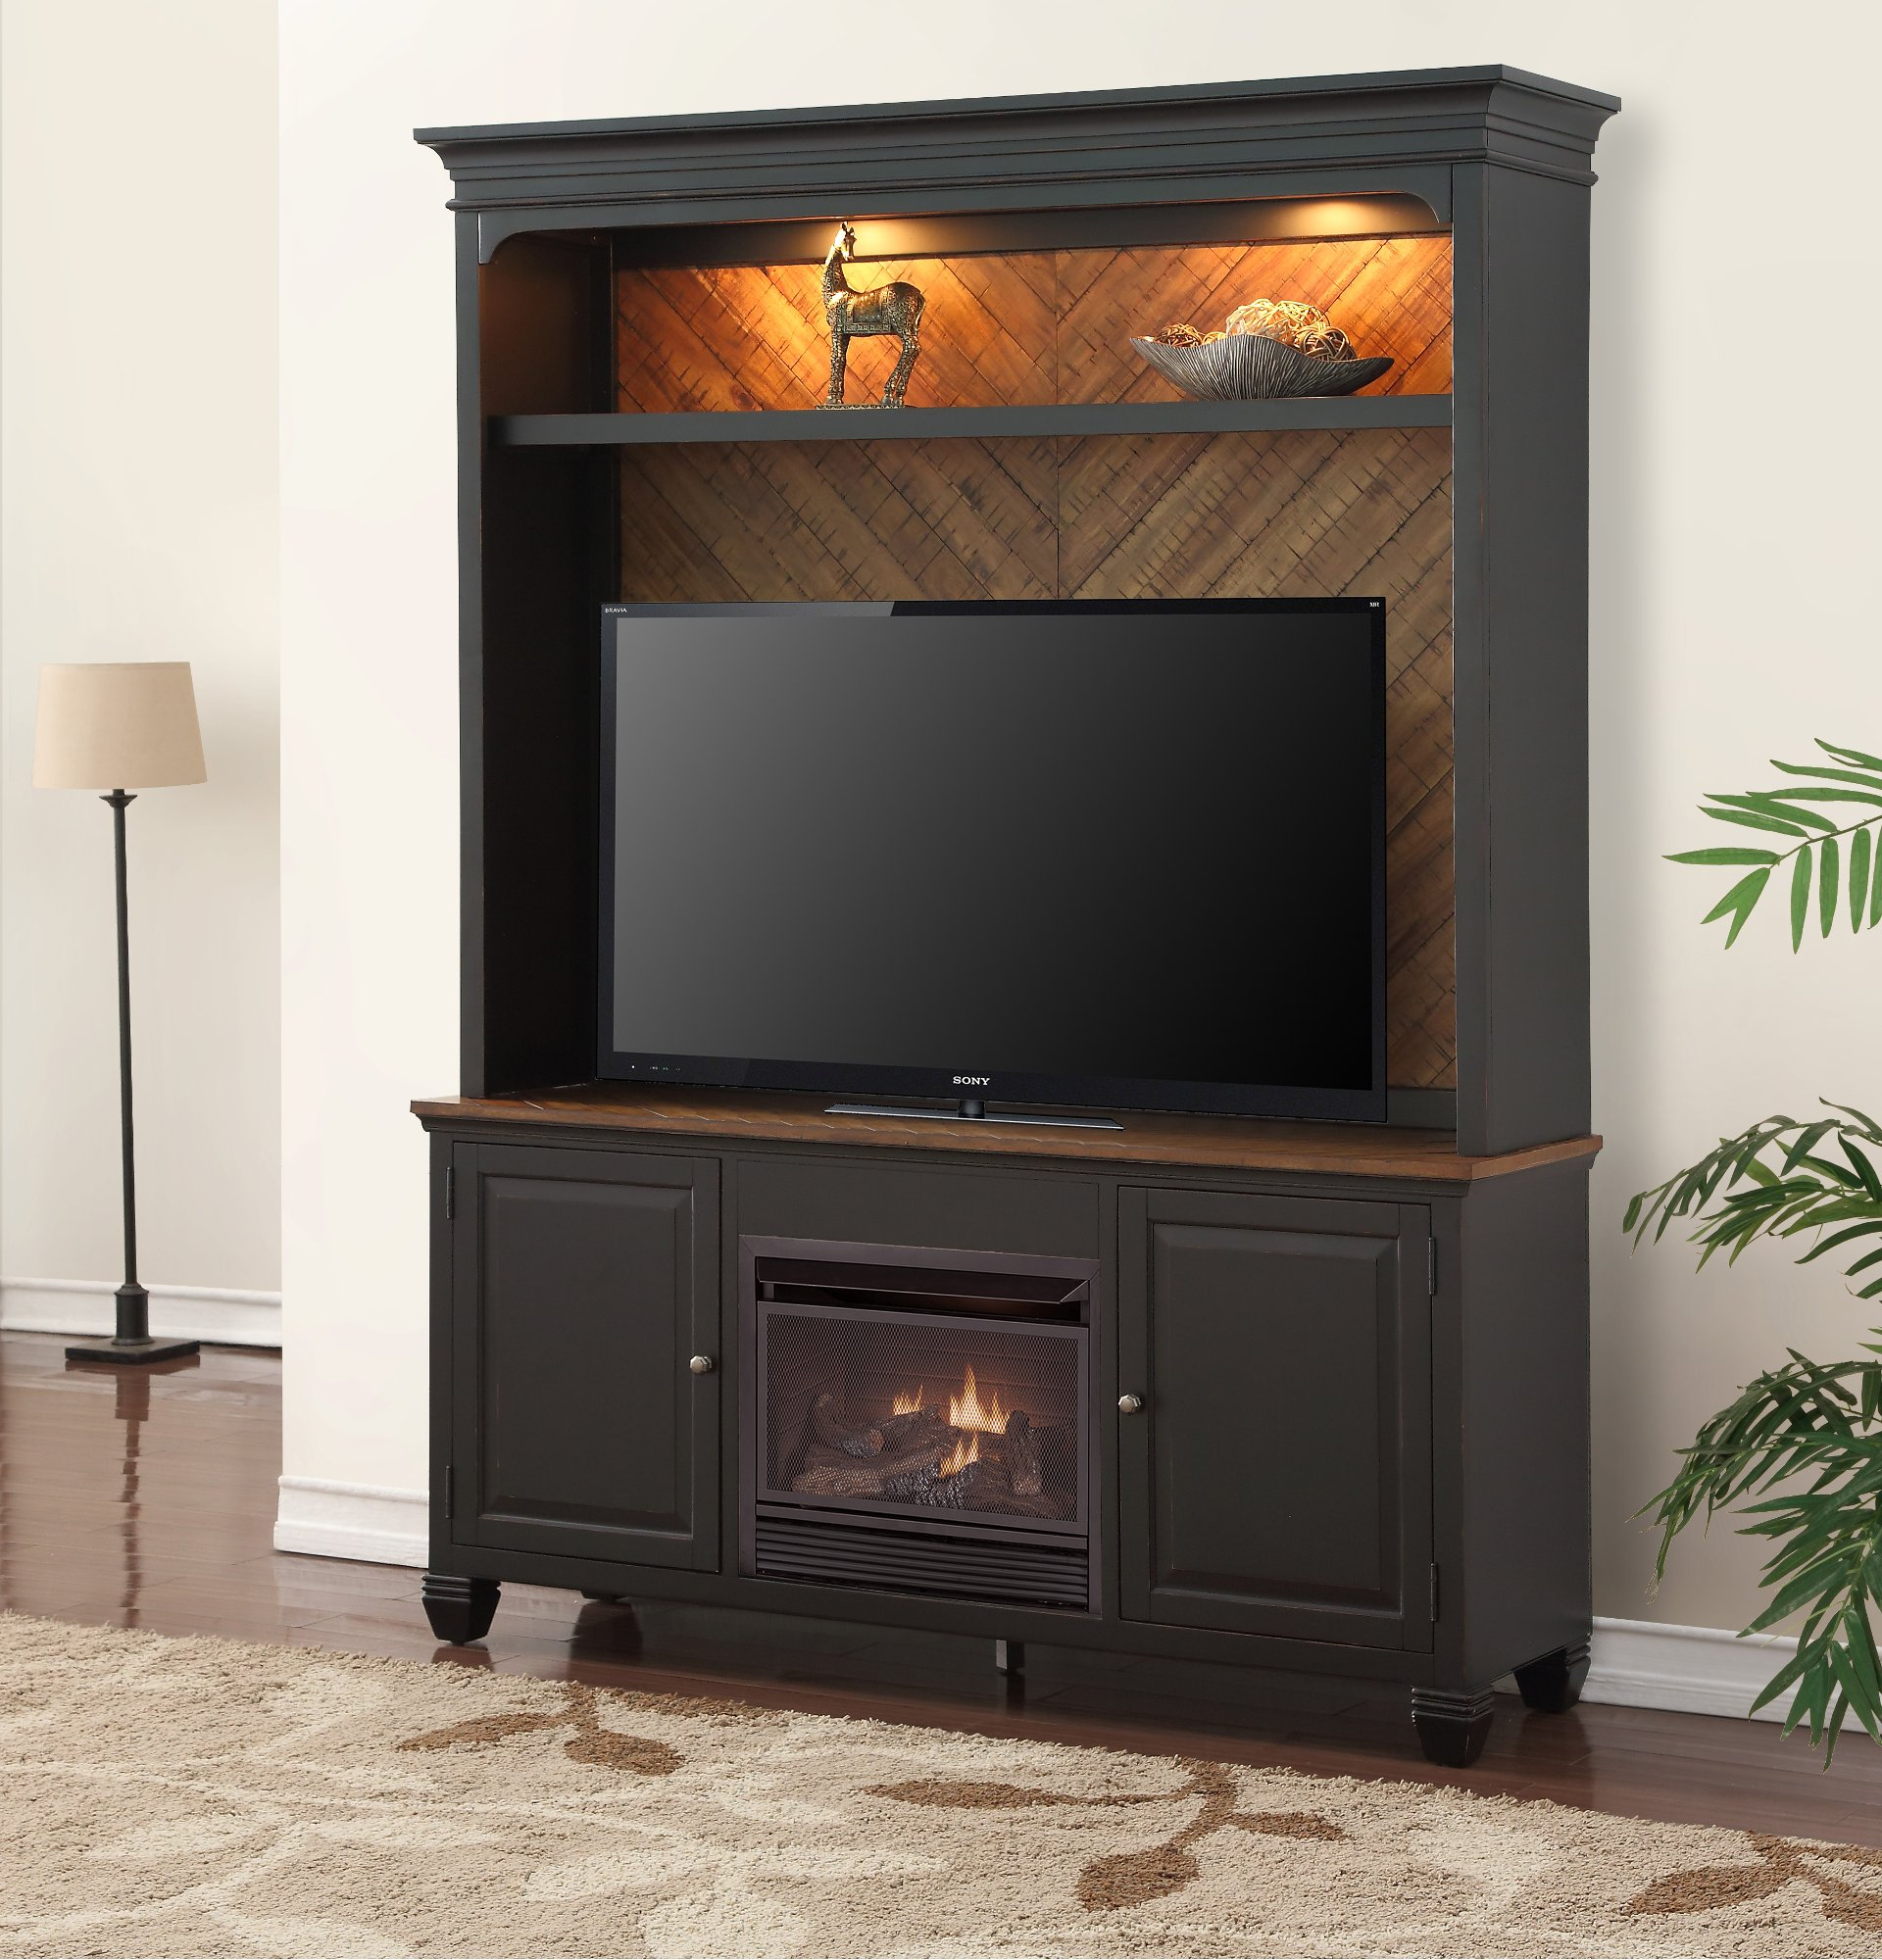 4 Piece Antique Black Fireplace Entertainment Center Brighton Hickory Rc Willey Furniture Store